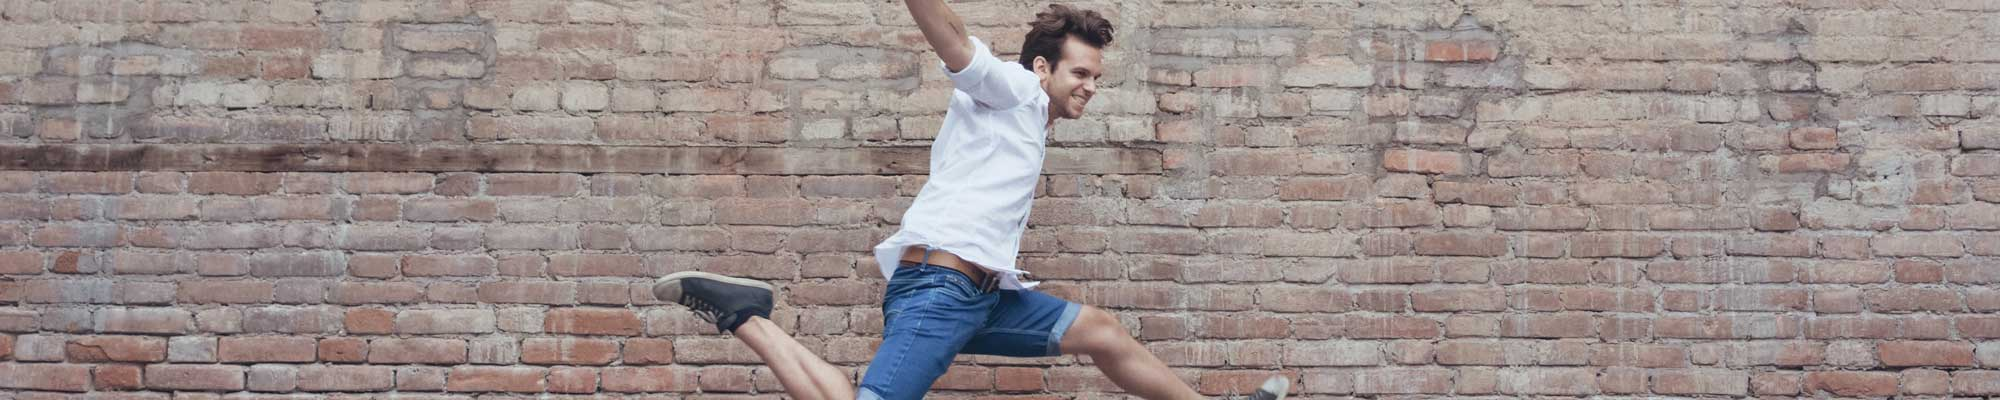 Leaping into your new existence